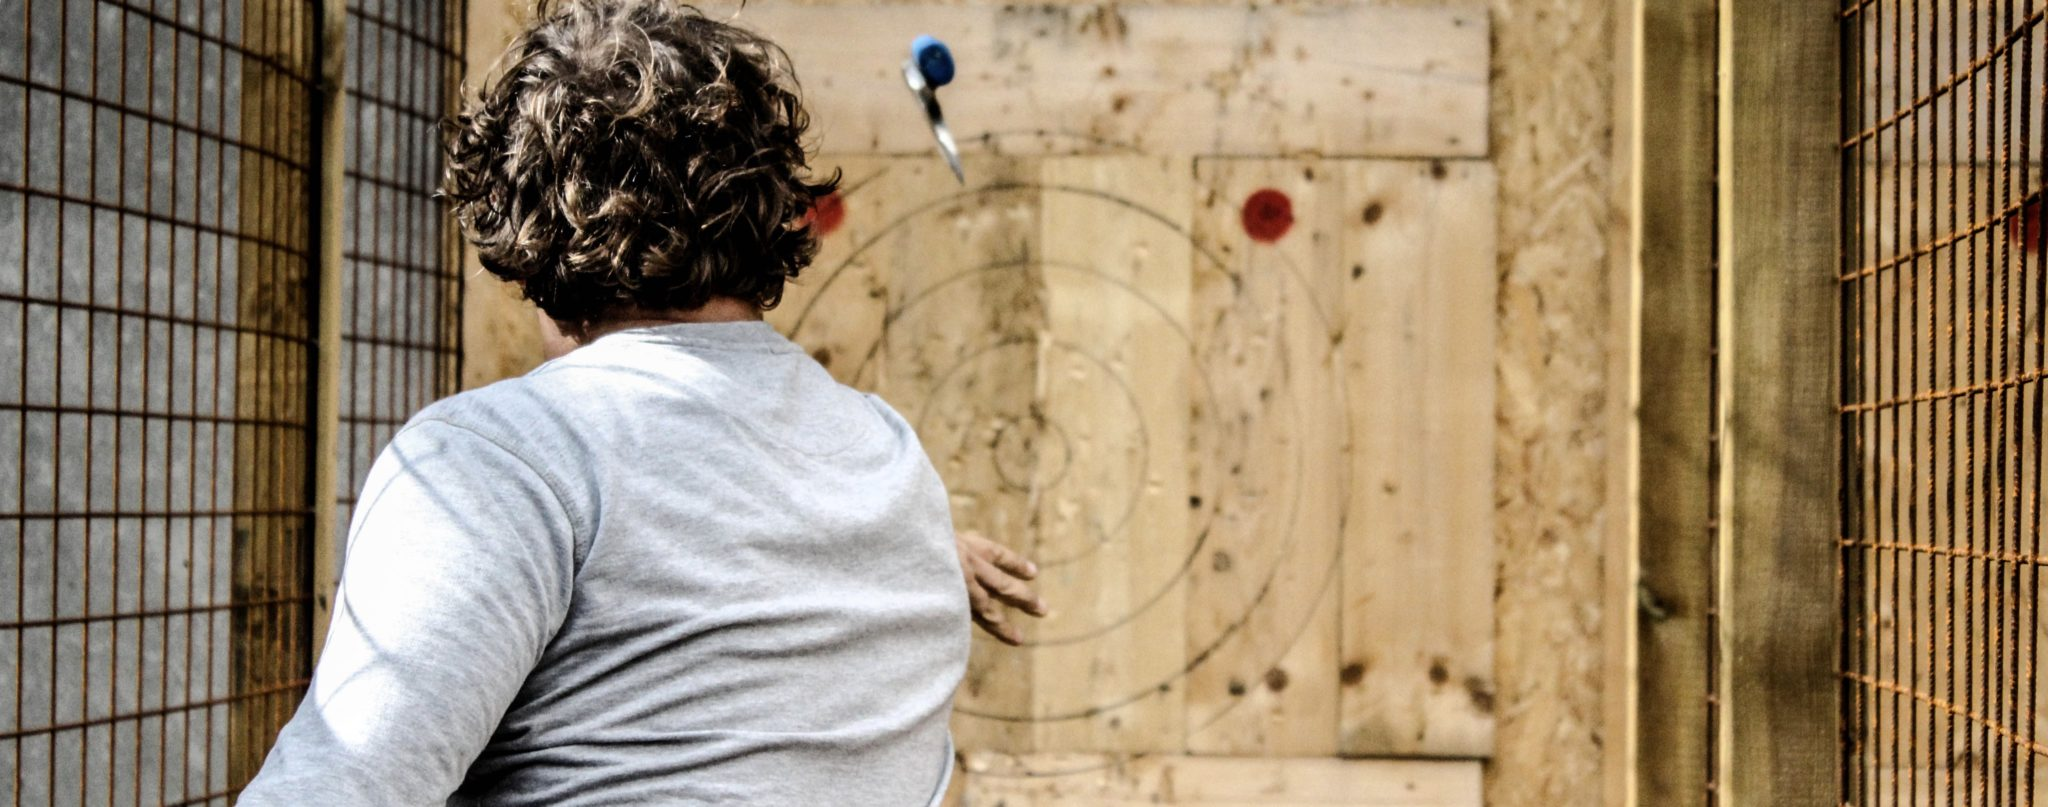 Urban Axe Throwing Amsterdam